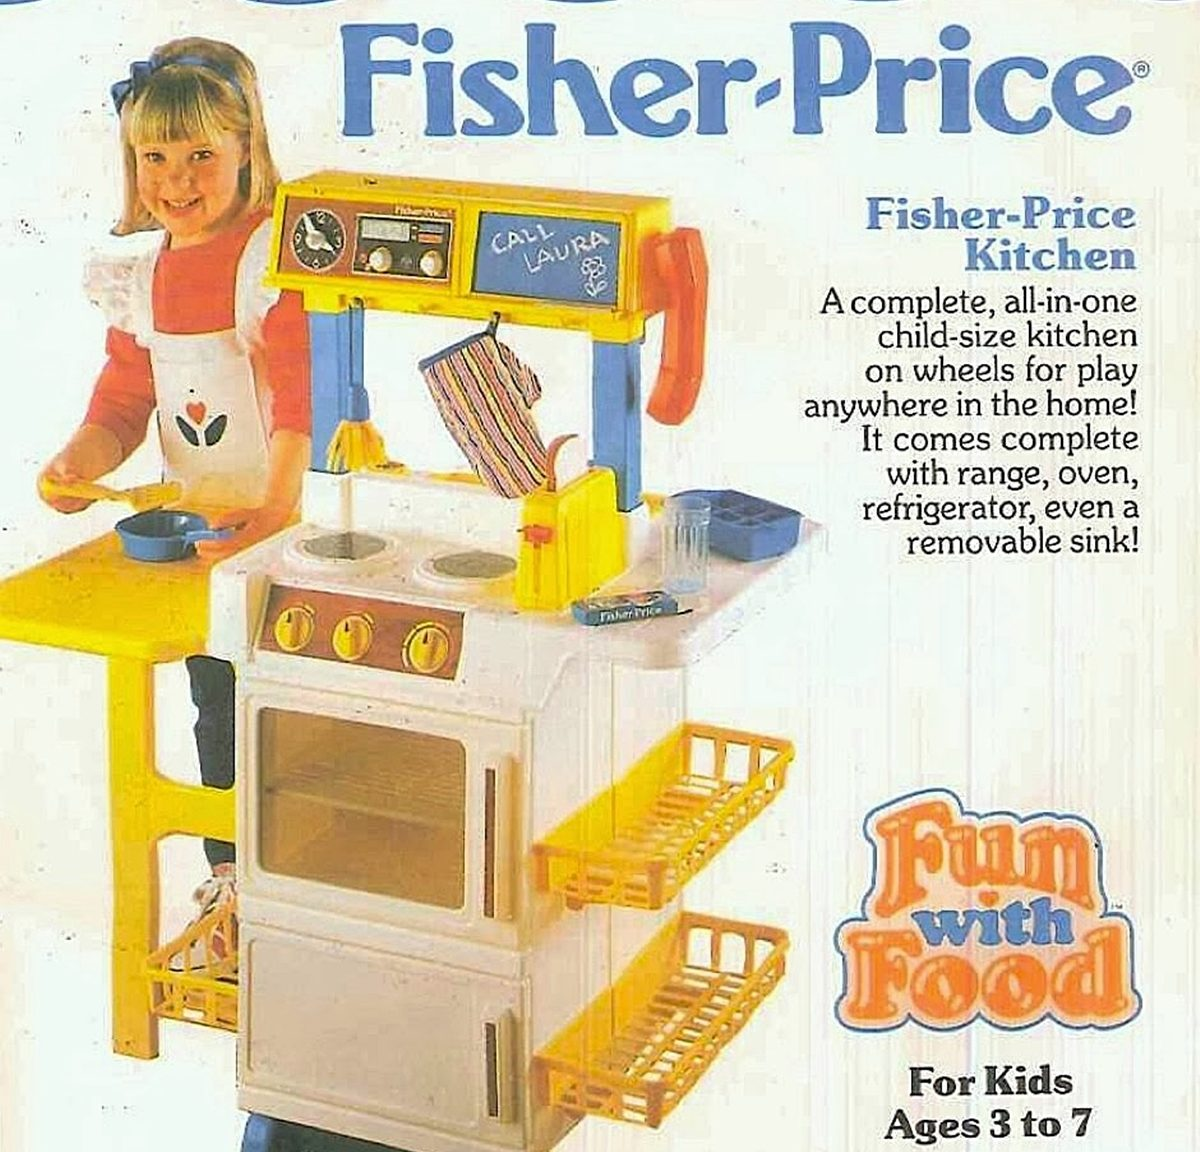 Fisher Price Kitchen e1614249142958 8 Food Based Toys That Will Remind You Of Being A Kid